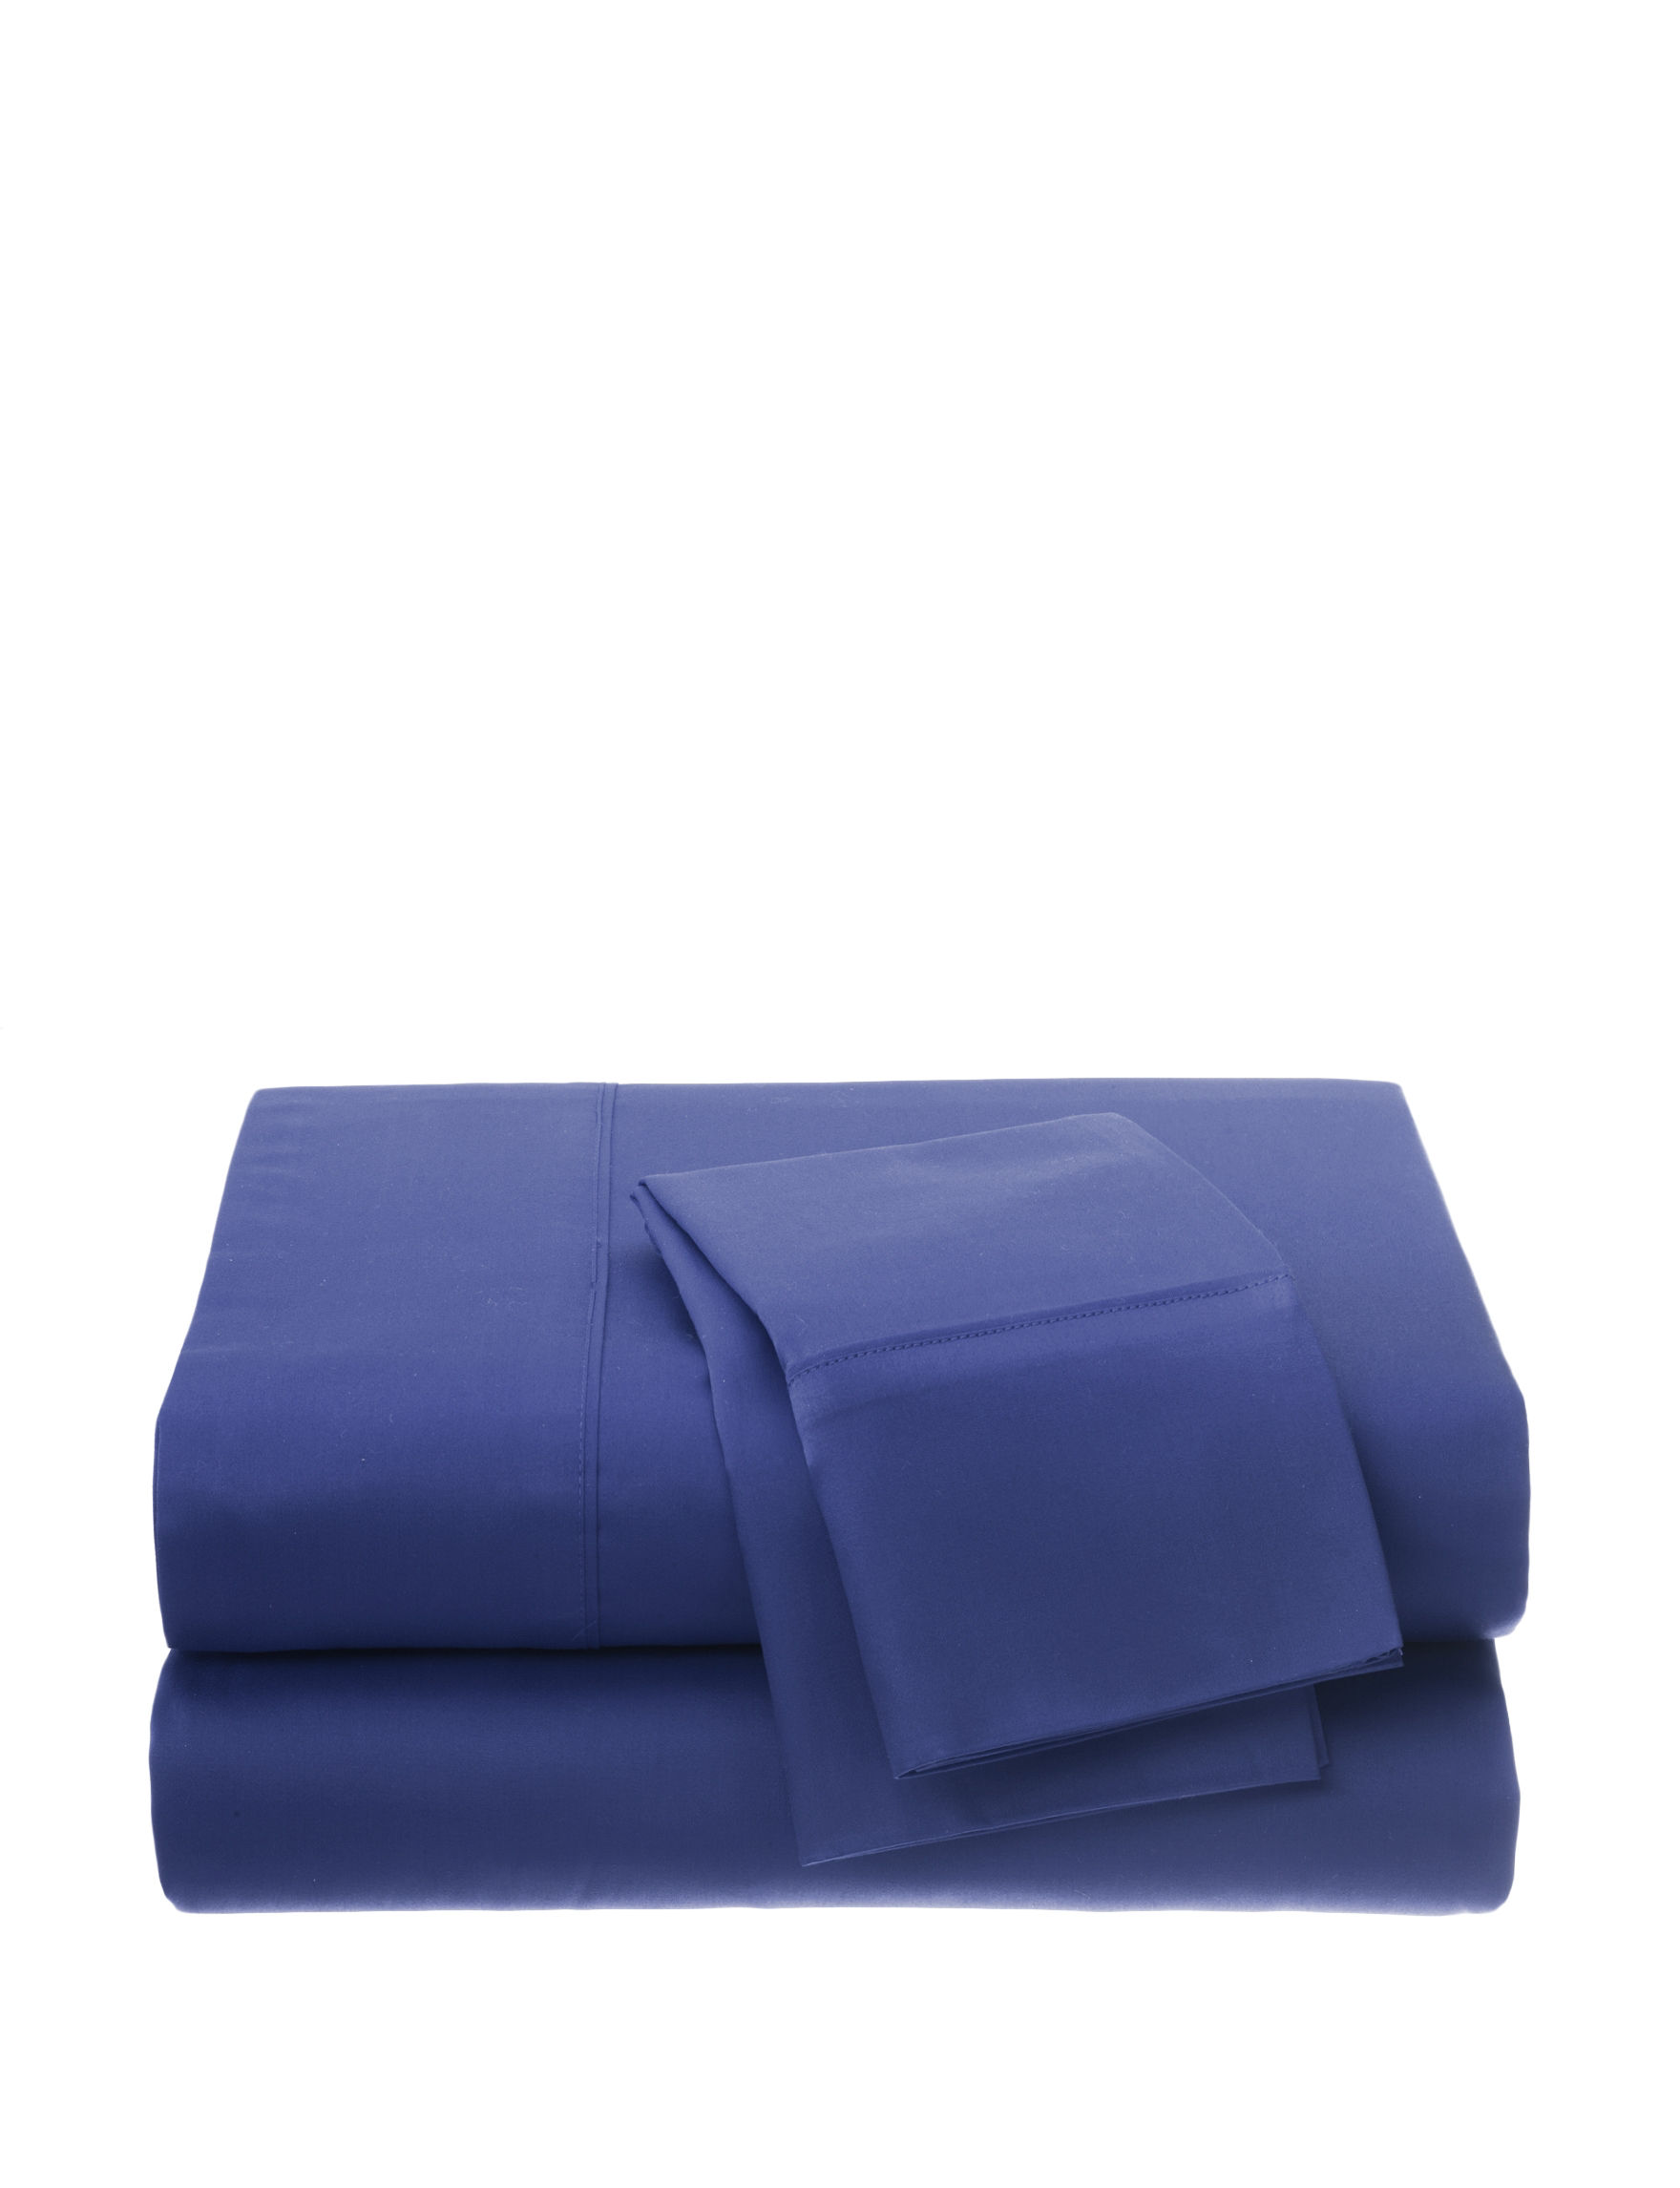 Fiesta Lapis Sheets & Pillowcases